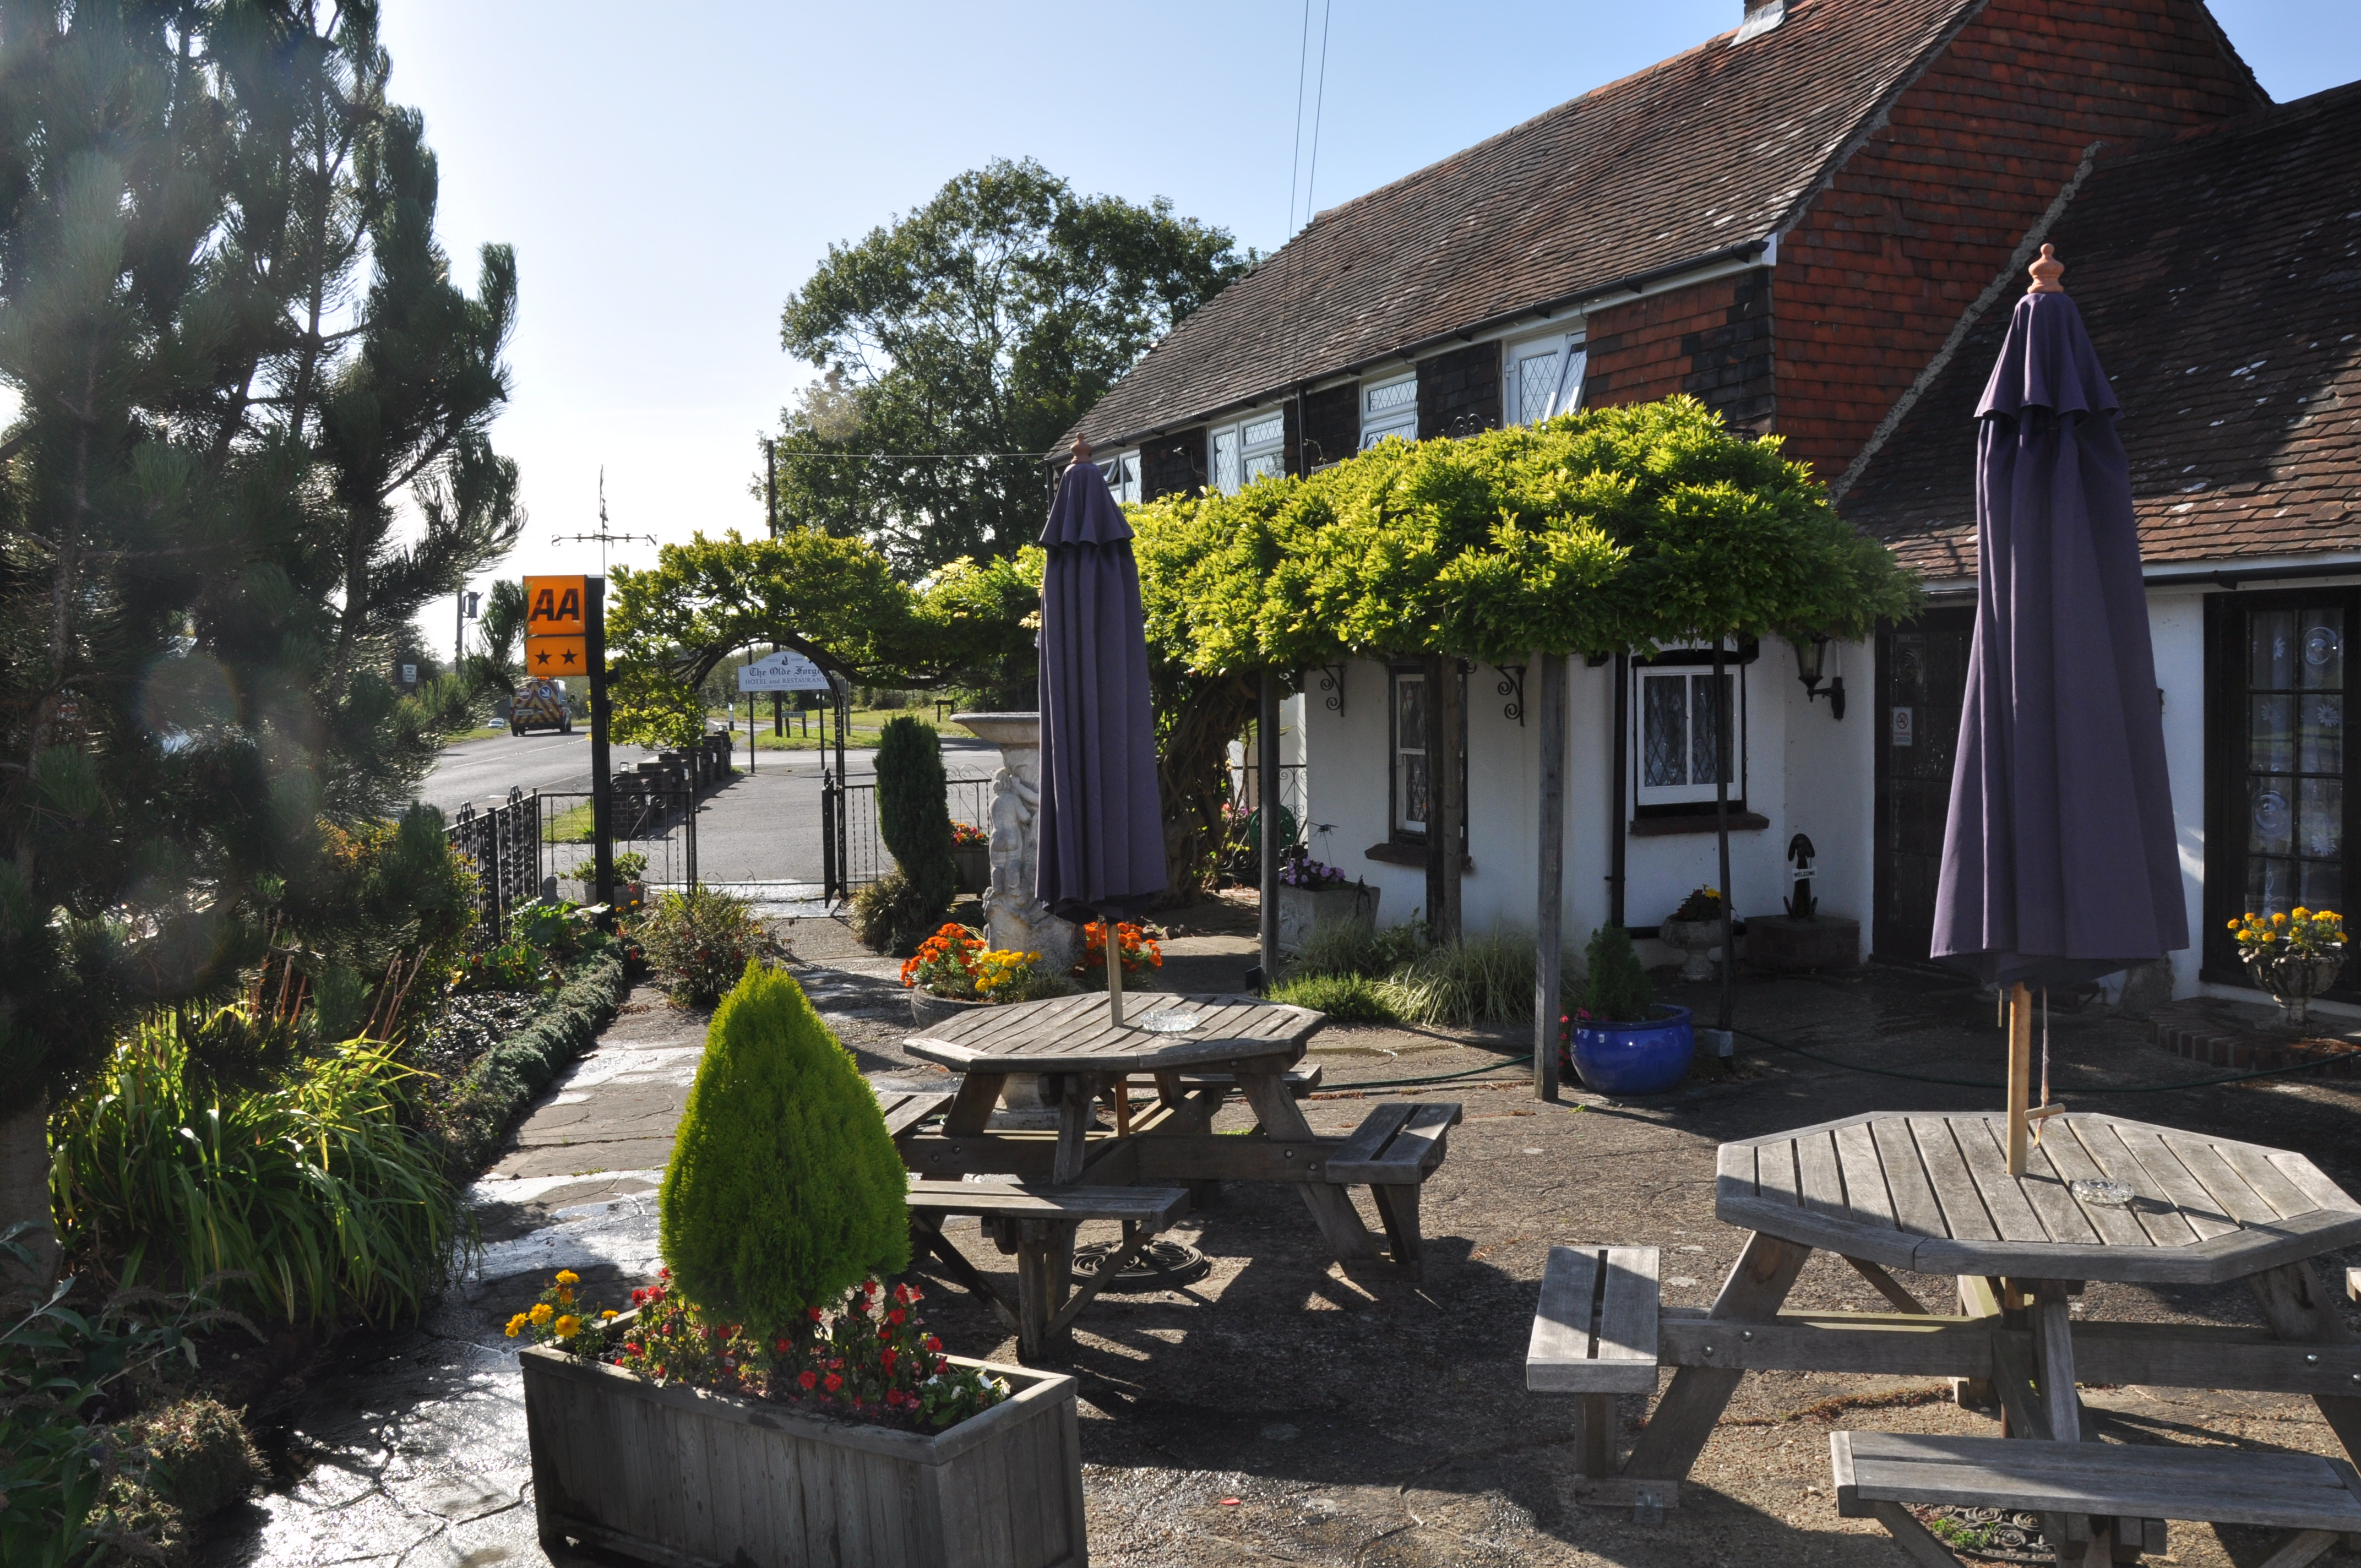 Olde Forge Hotel and Restaurant